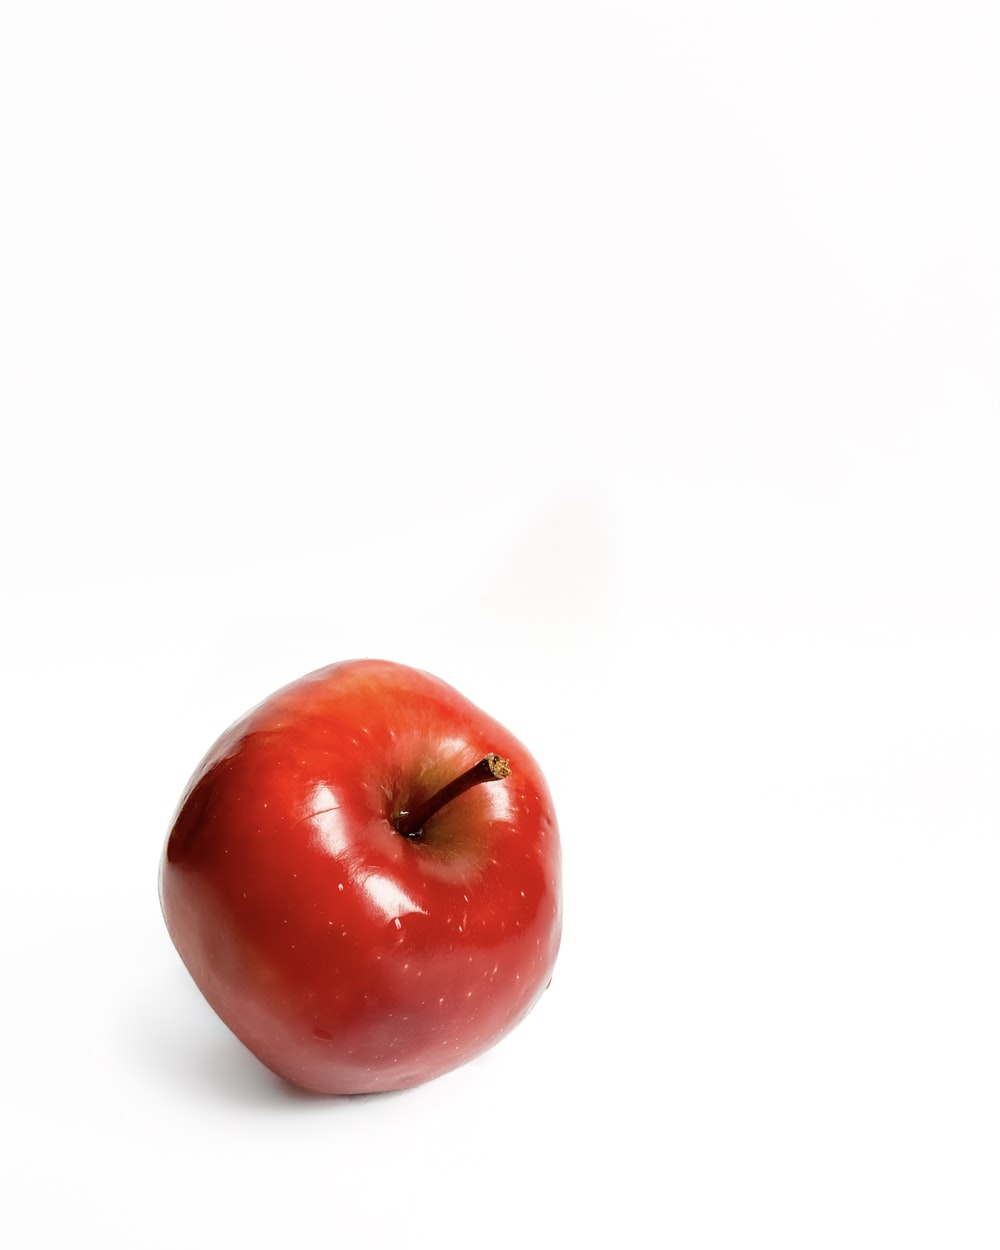 red apple on white surface